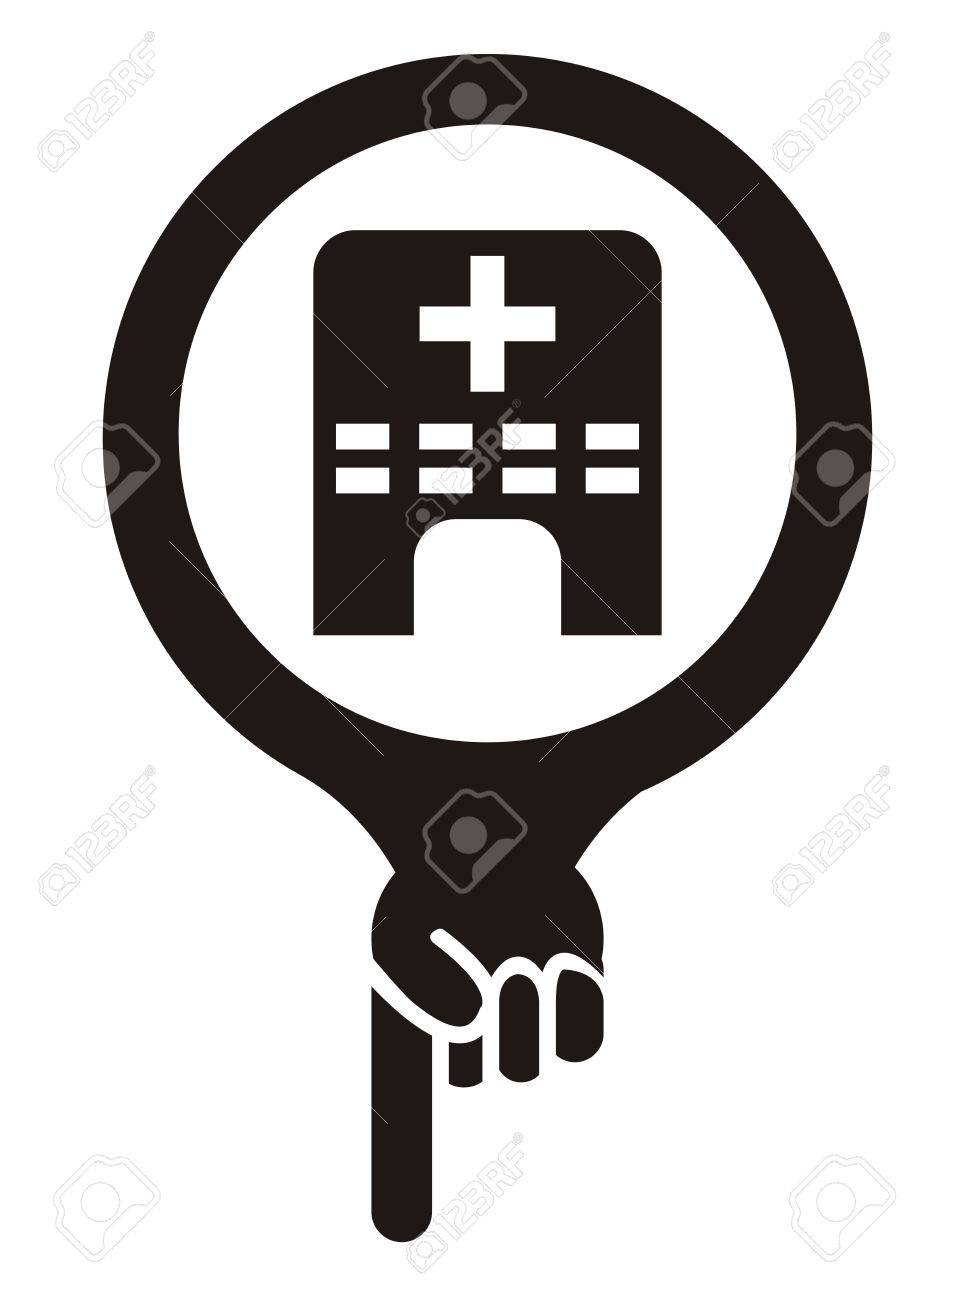 Black map pointer icon with clinic medical center or hospital black map pointer icon with clinic medical center or hospital sign isolated on white background biocorpaavc